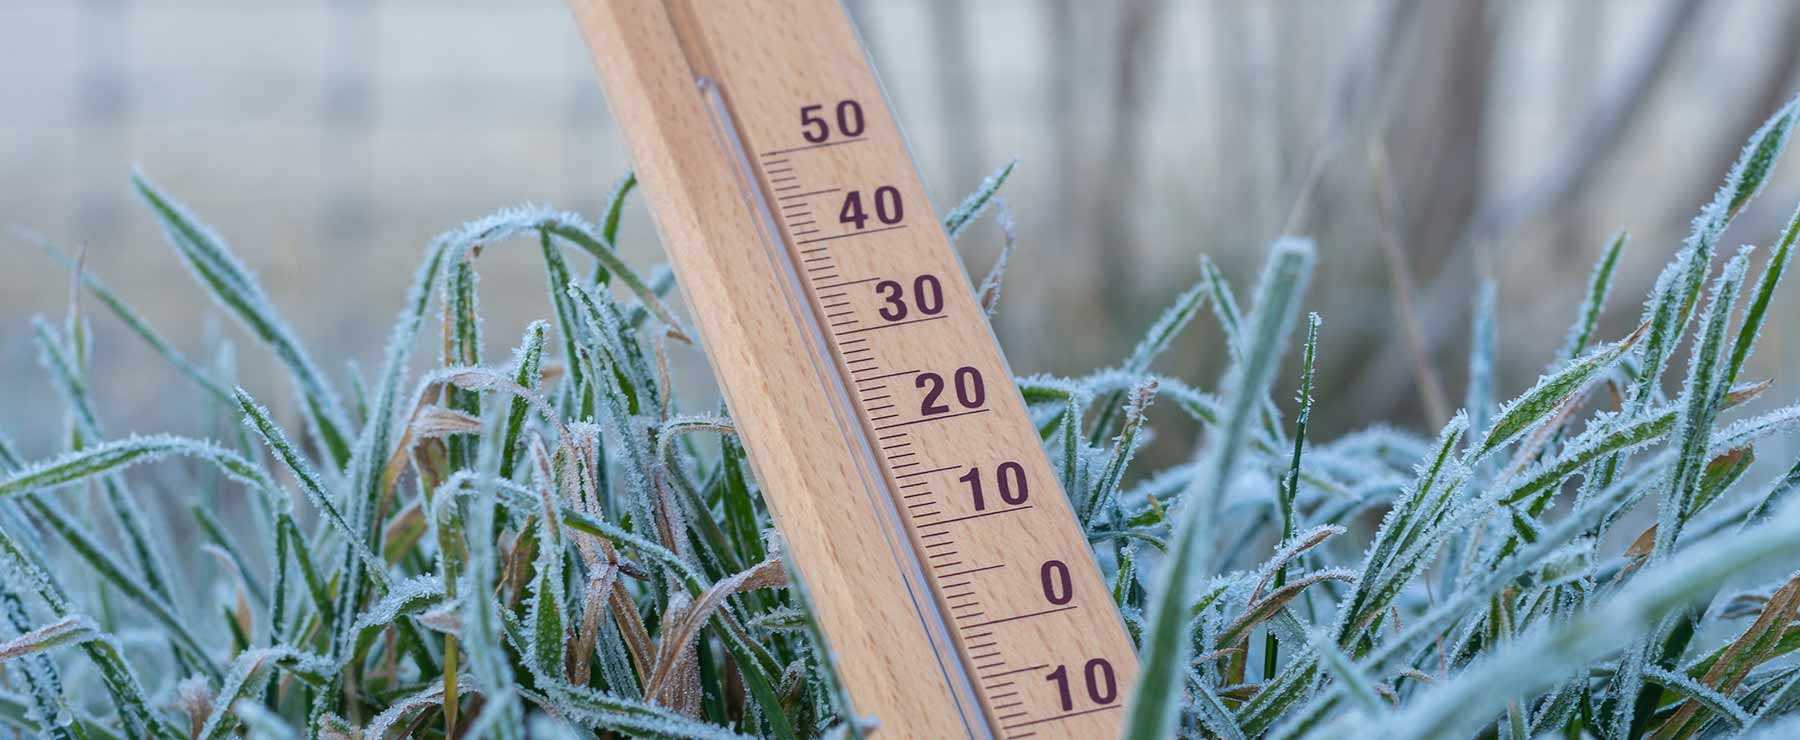 Outside thermometer